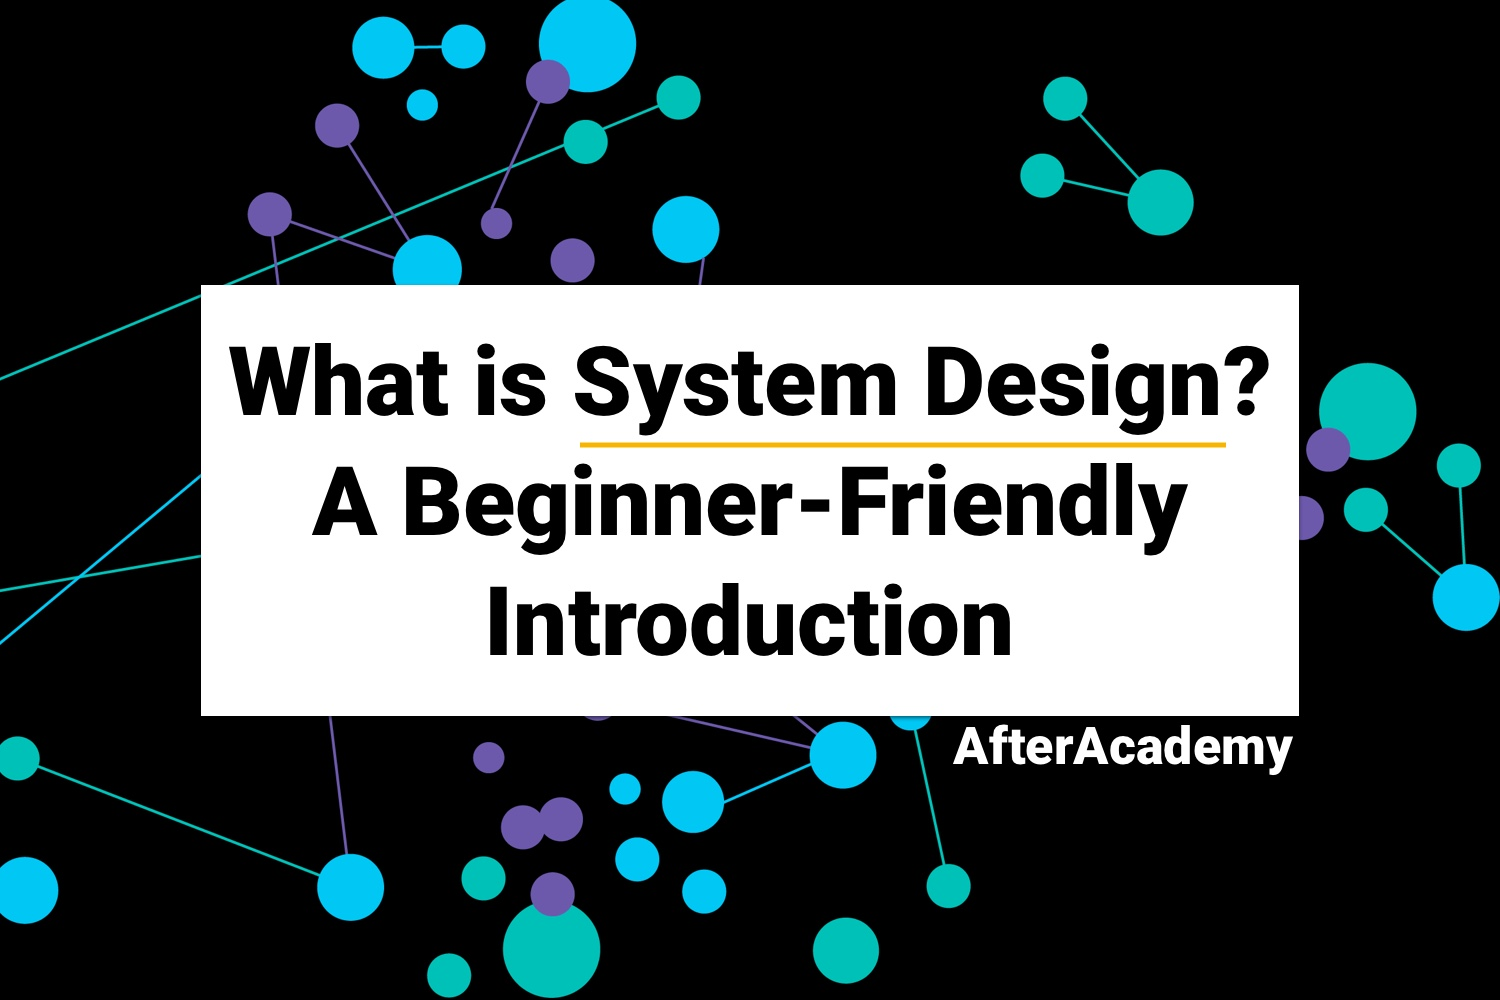 What is System Design? A Beginner-Friendly Introduction